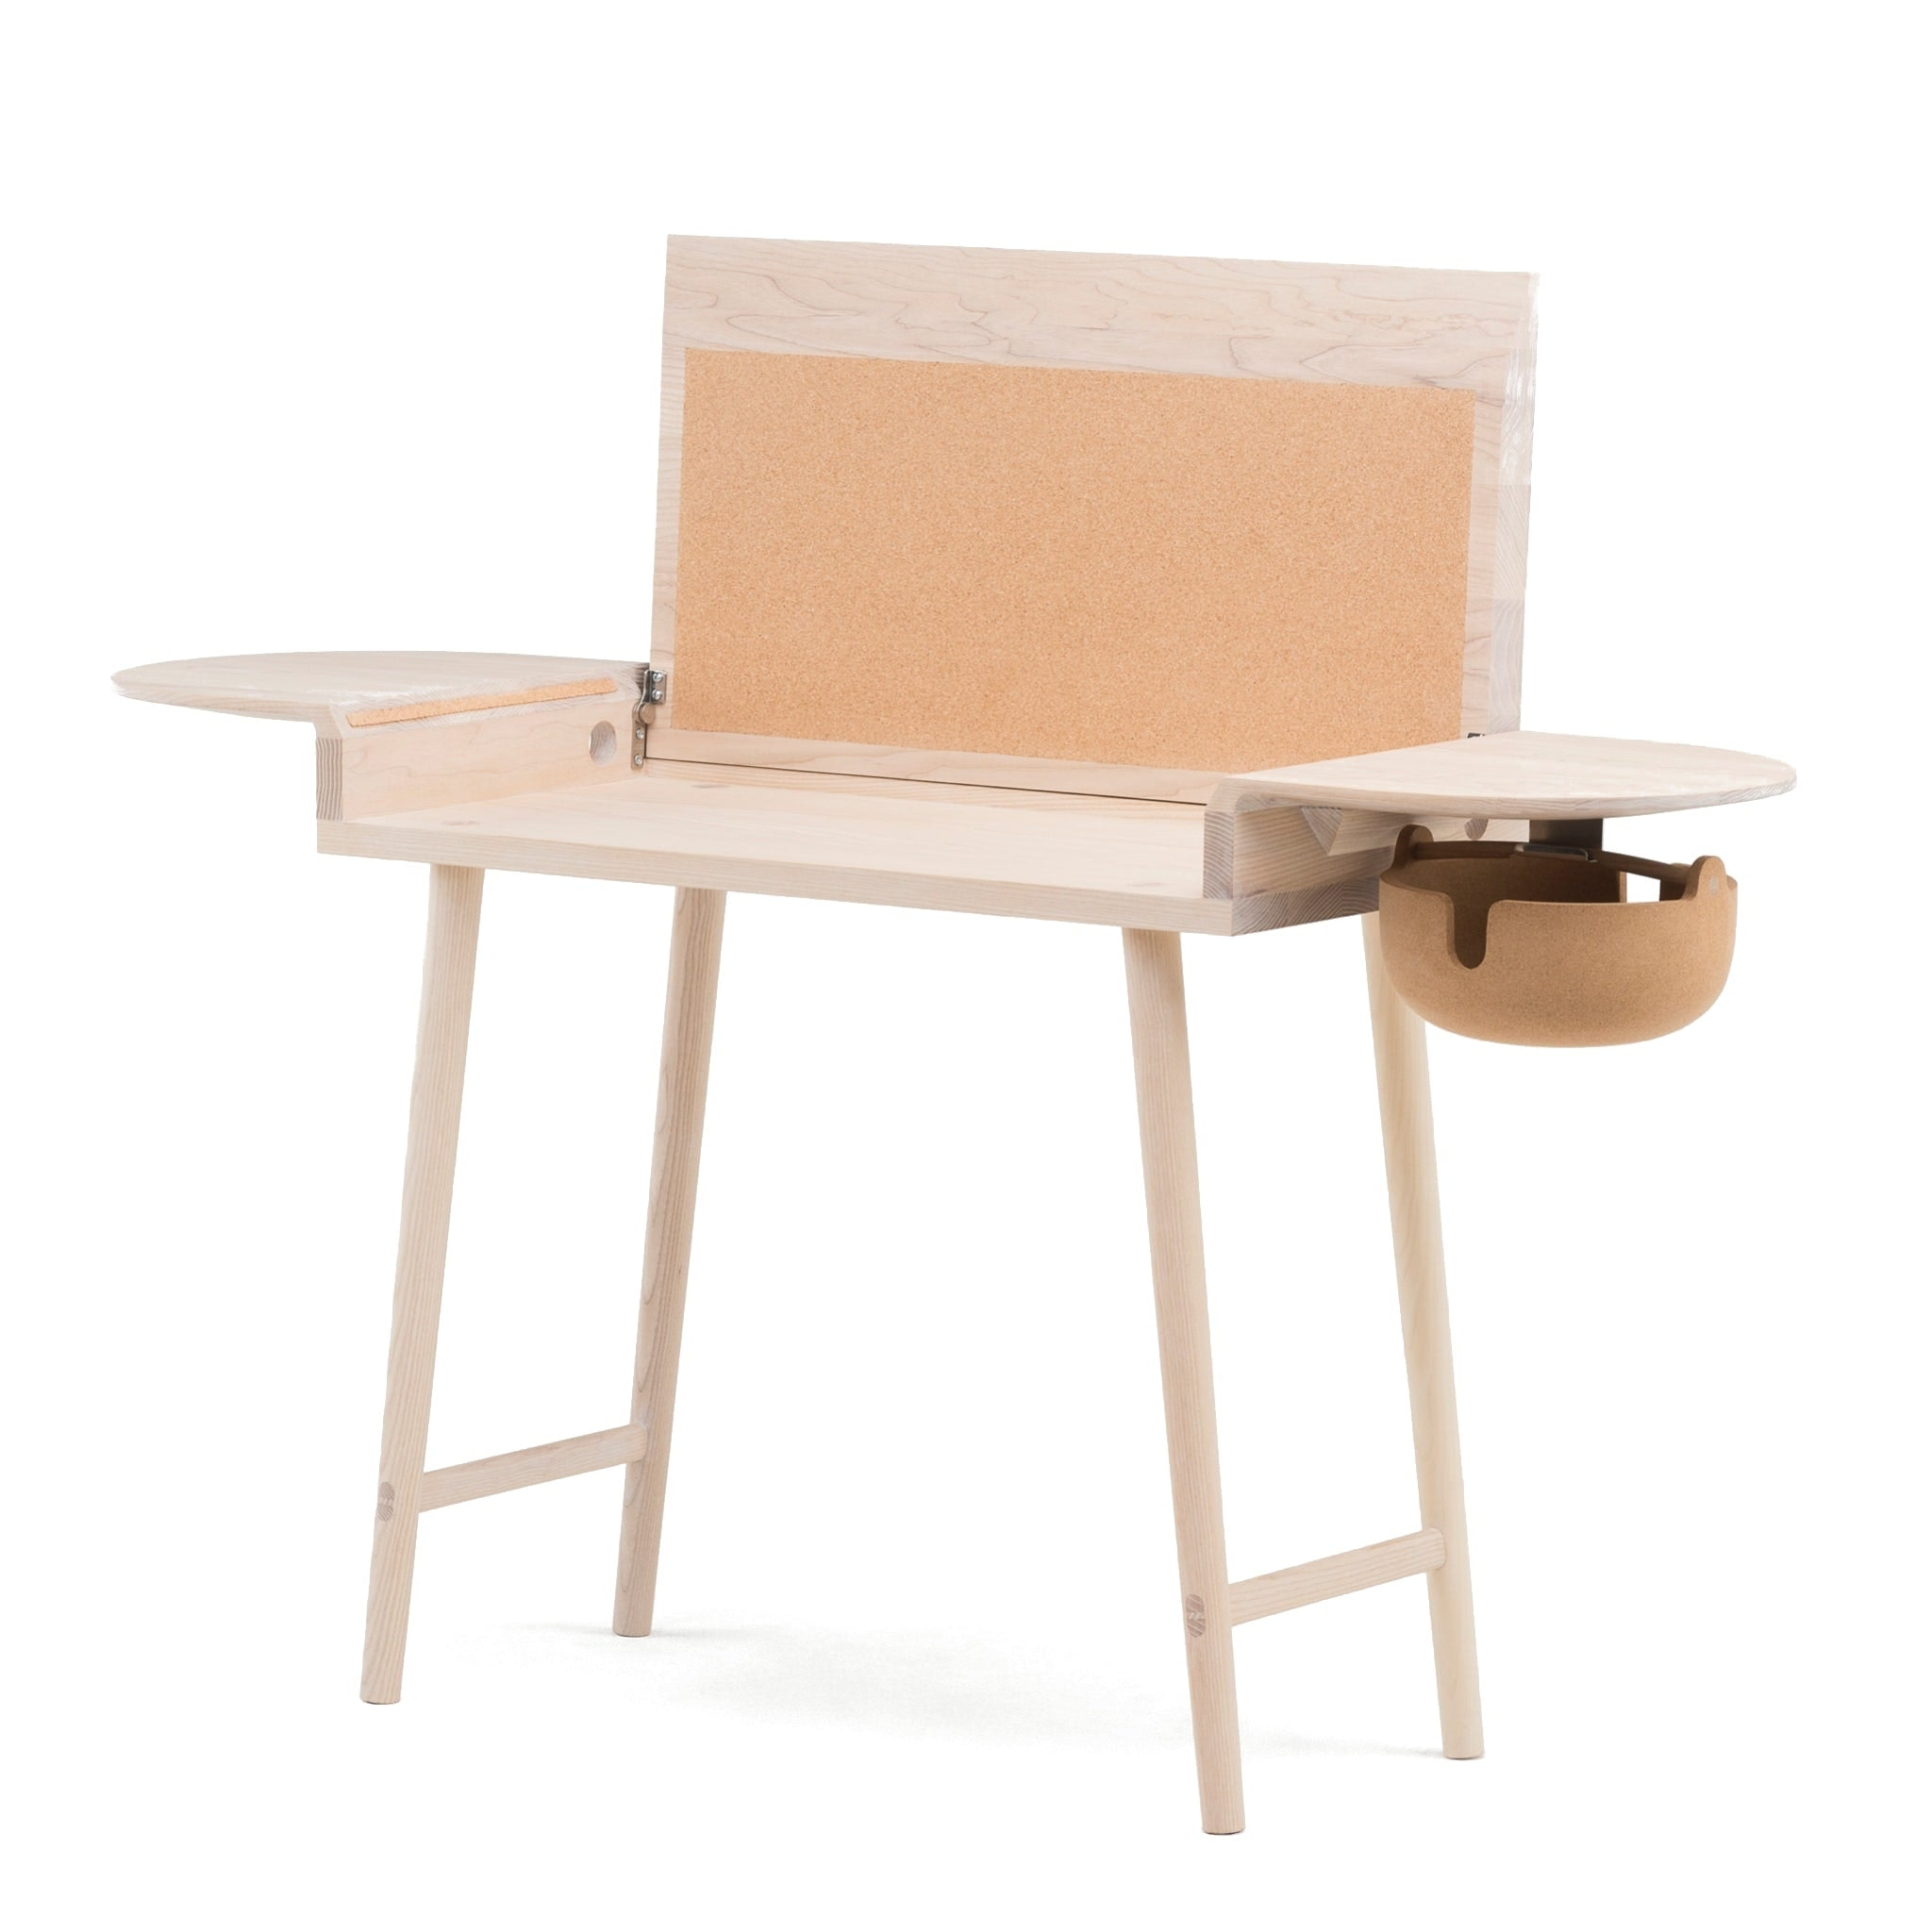 Companions Desk by Ilse Crawford